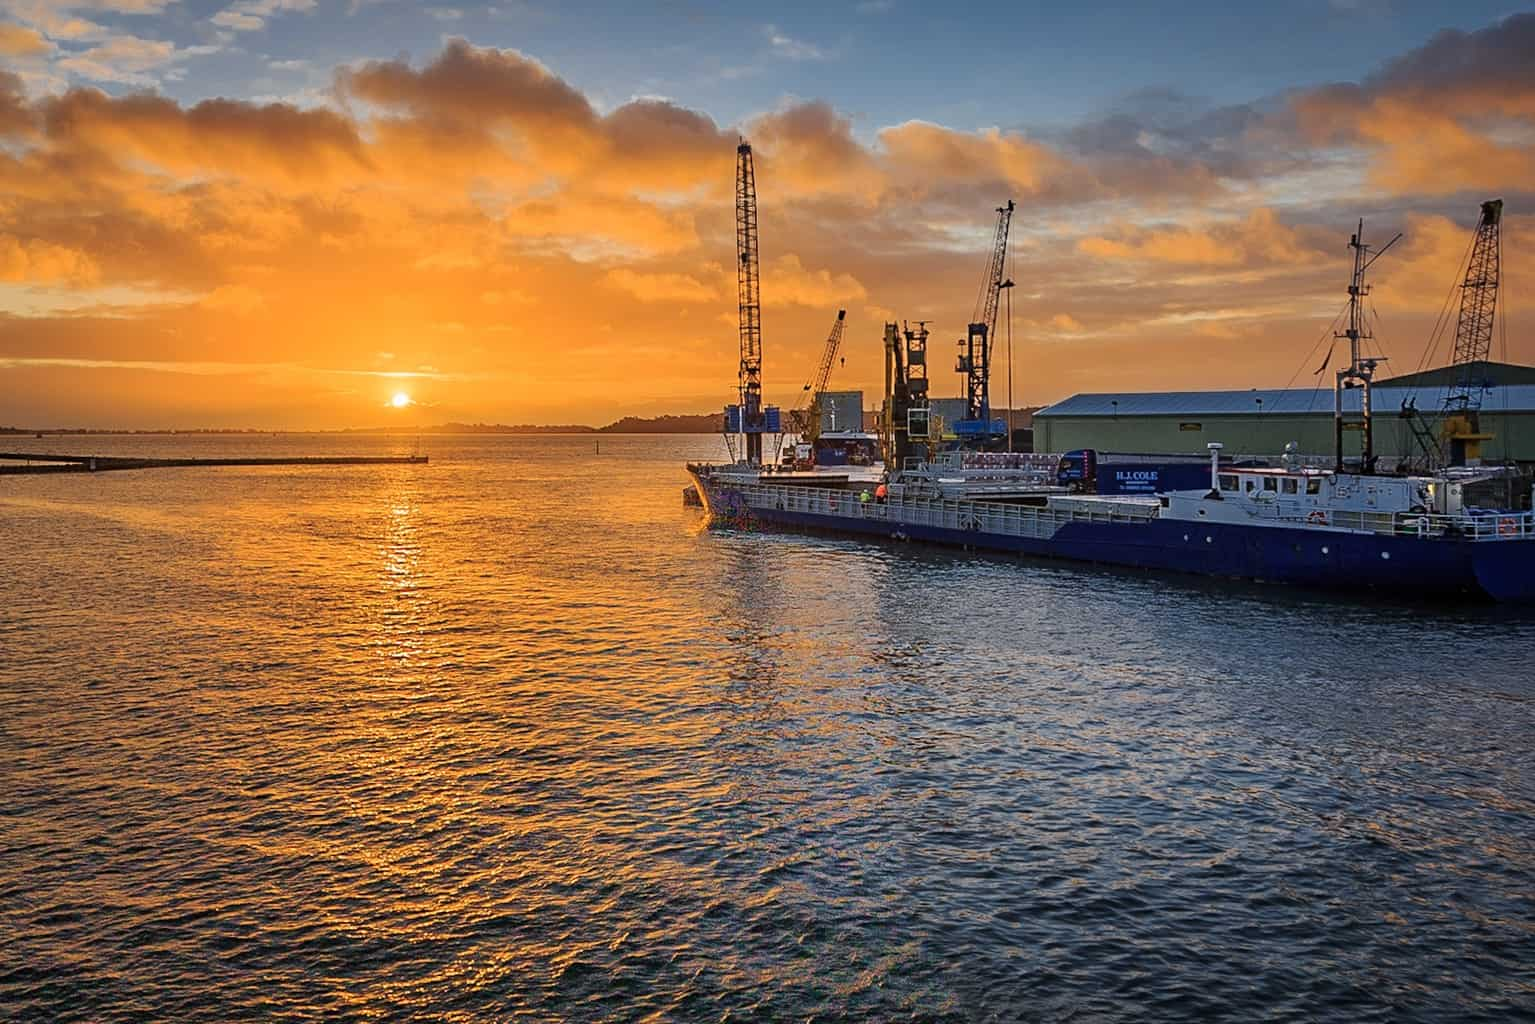 The Port of Poole at sunrise photographed by Poole Photographer Rick McEvoy